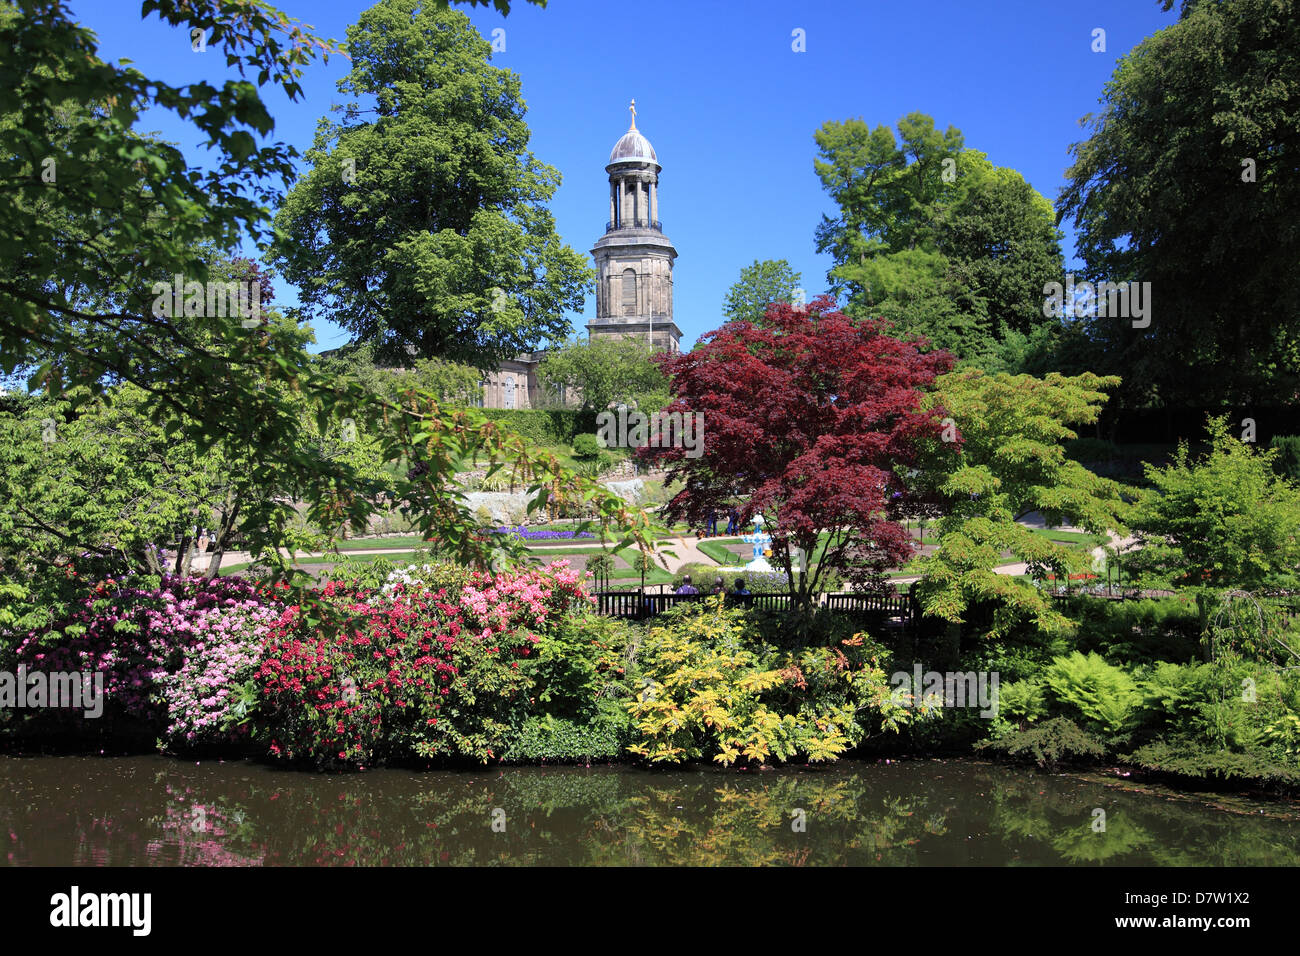 The Dingle, a garden within the Quarry Park in Shrewsbury, with the church of St. Chad in the background. - Stock Image